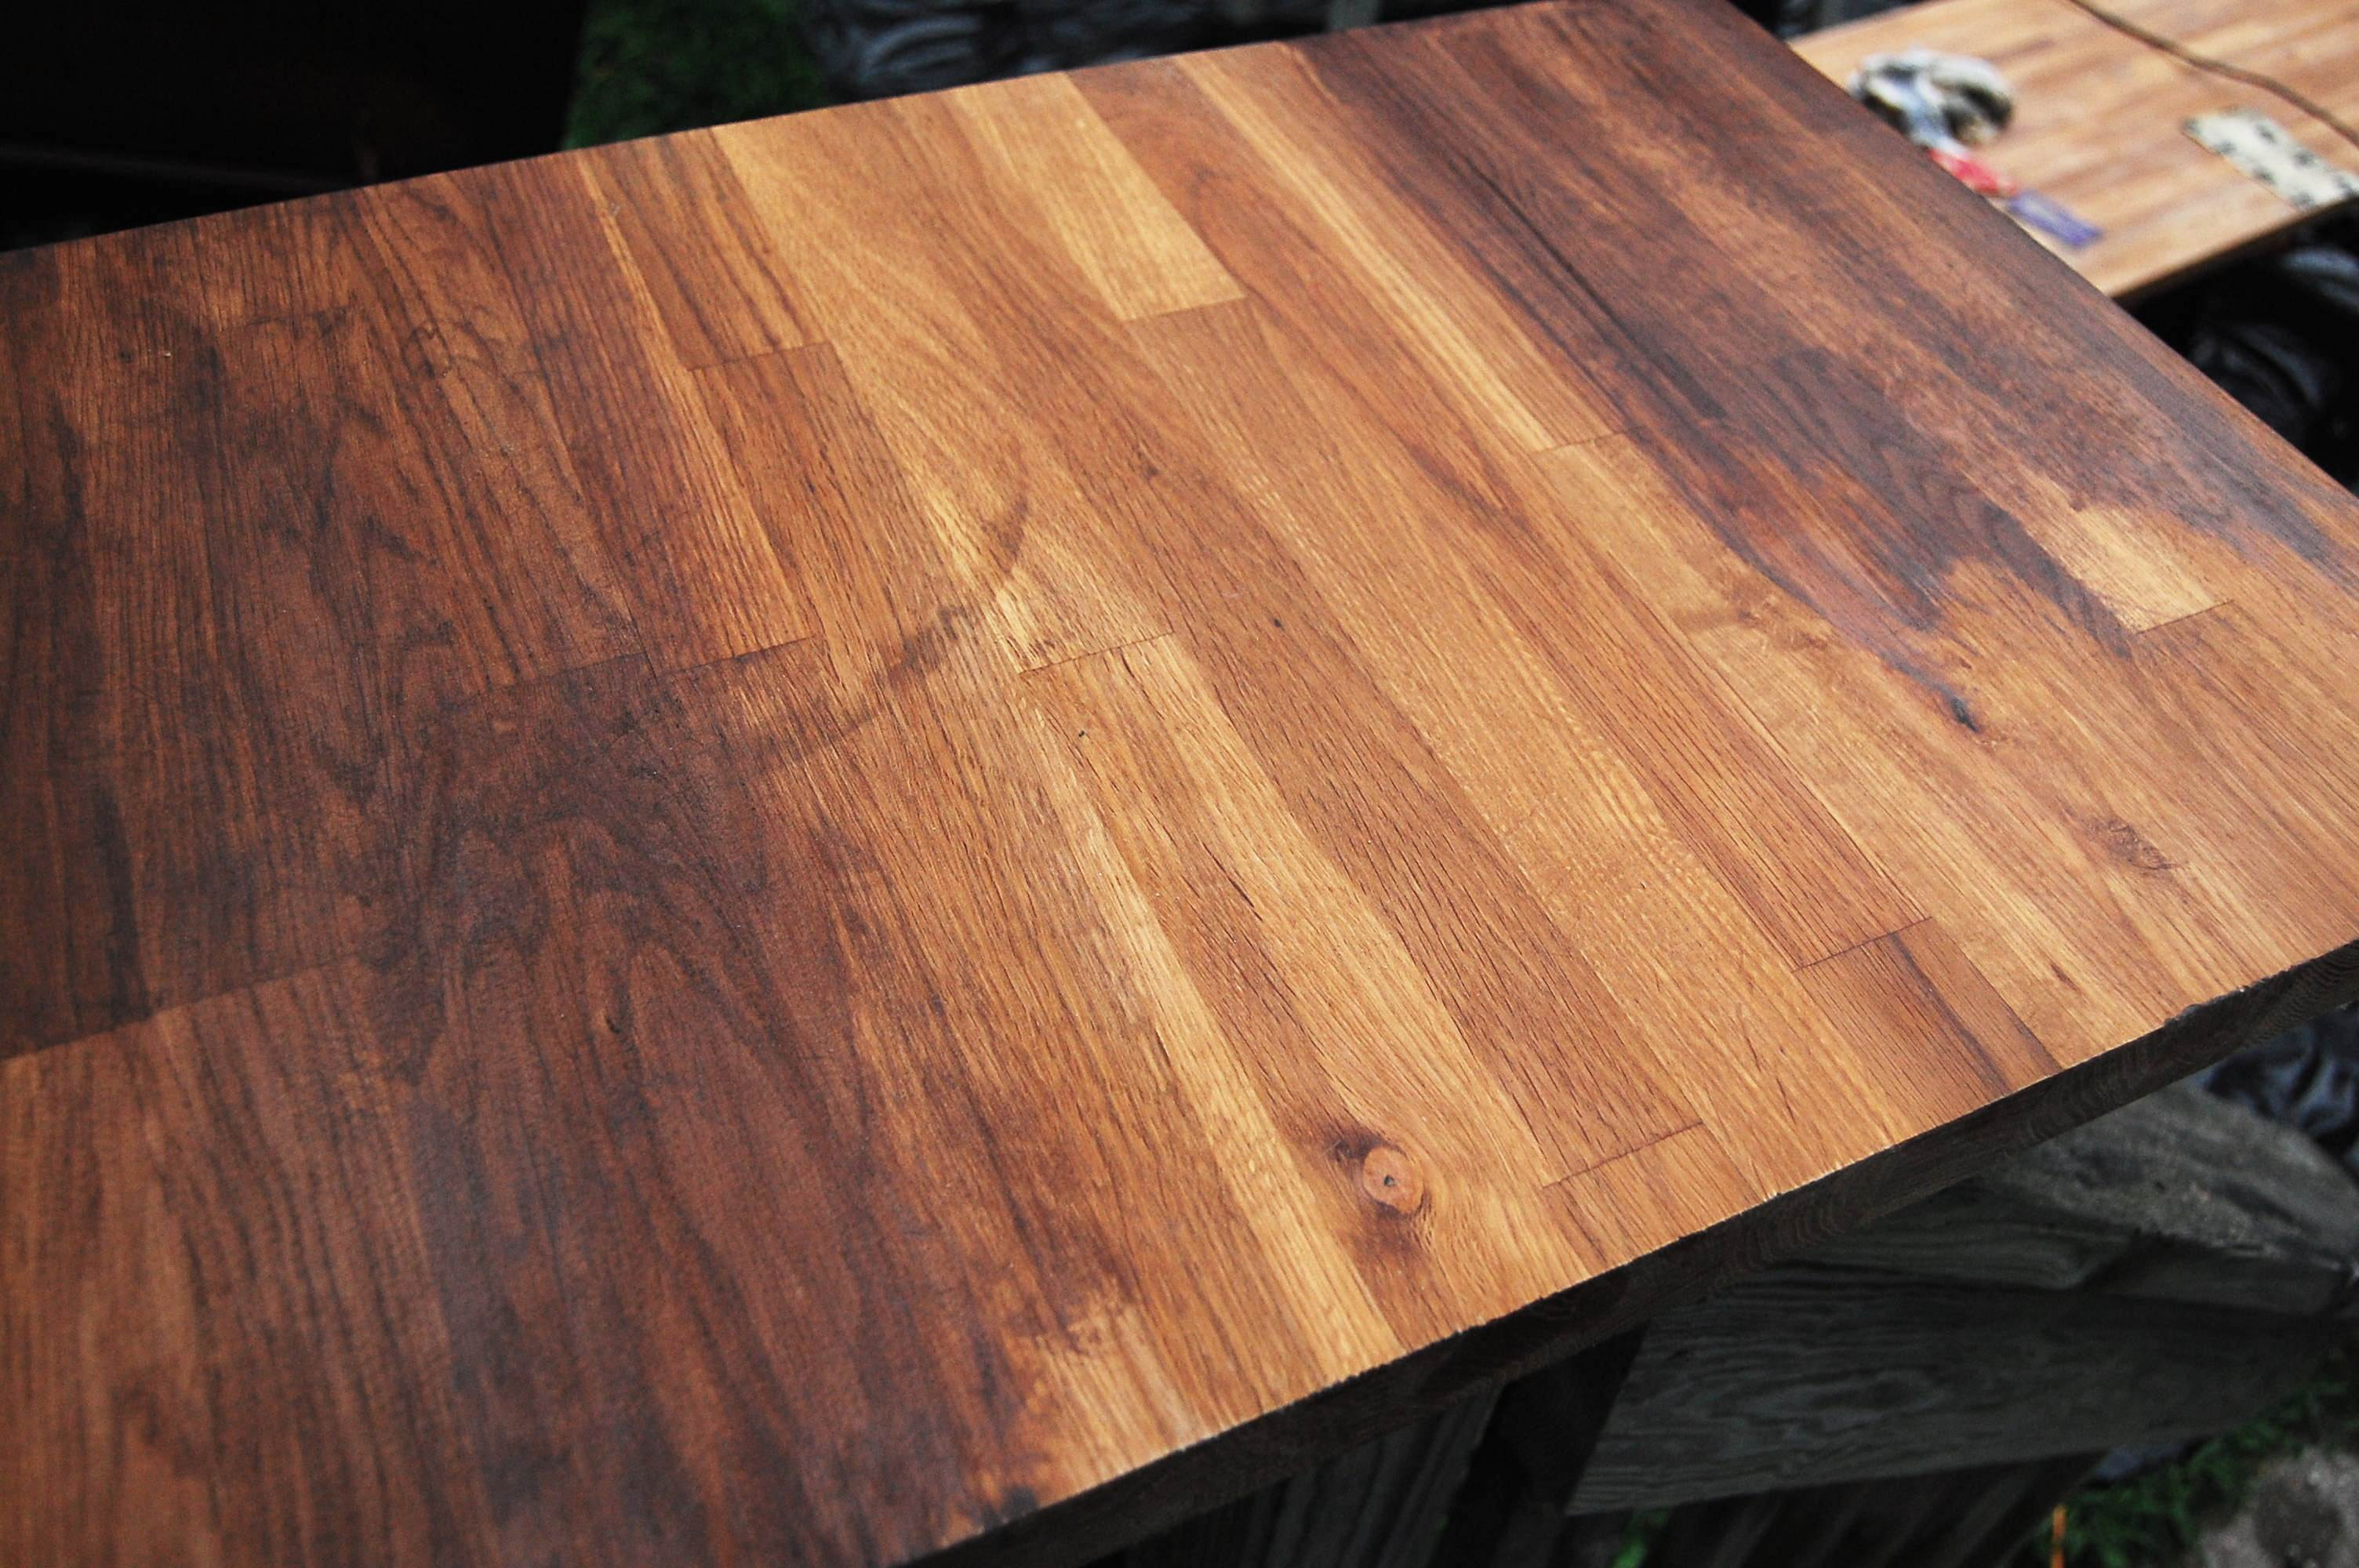 How To Stain Pine Wood Plans DIY Free Download outdoor